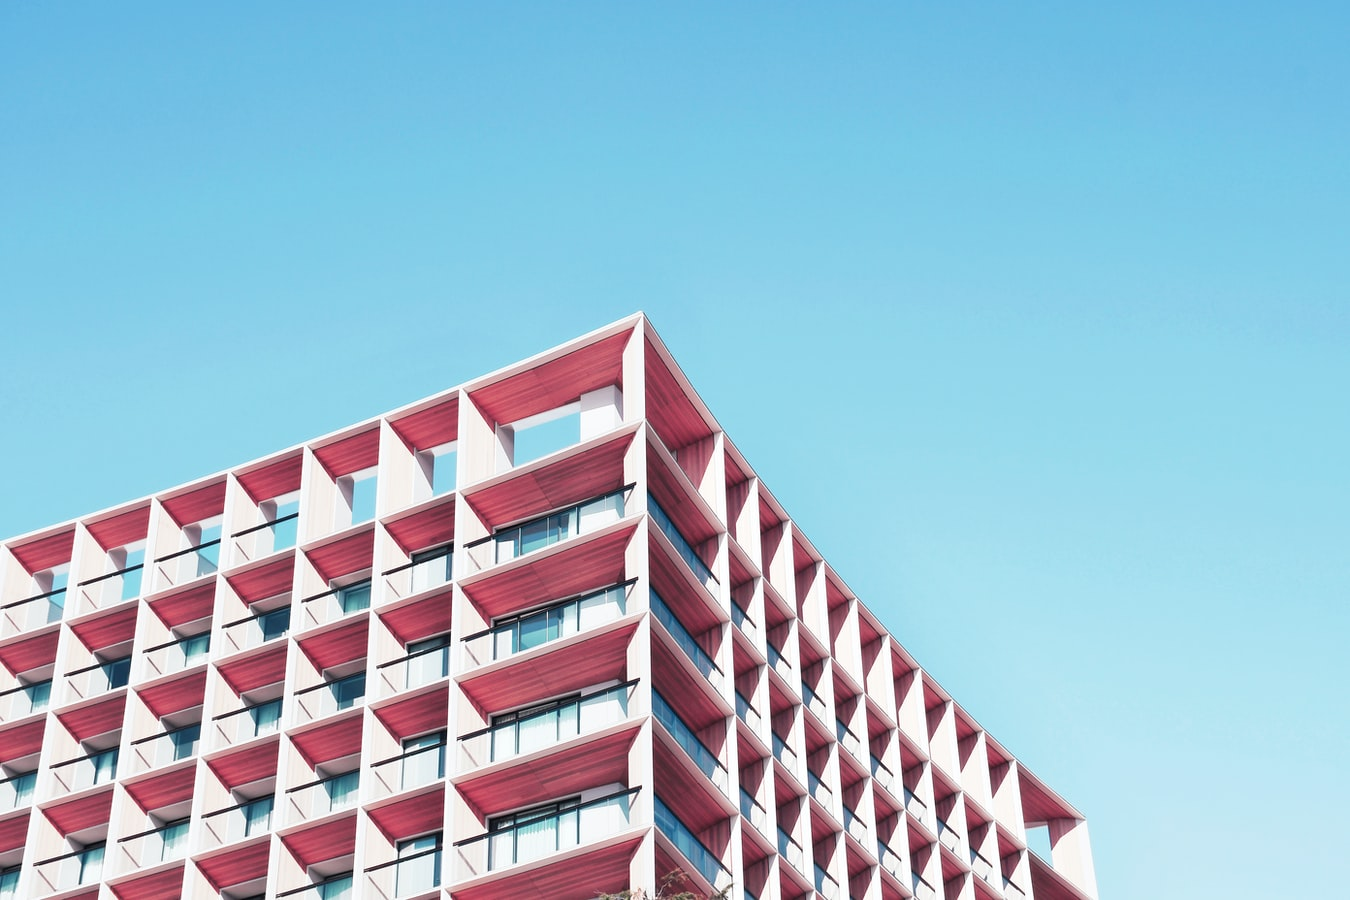 Stock image of a building.